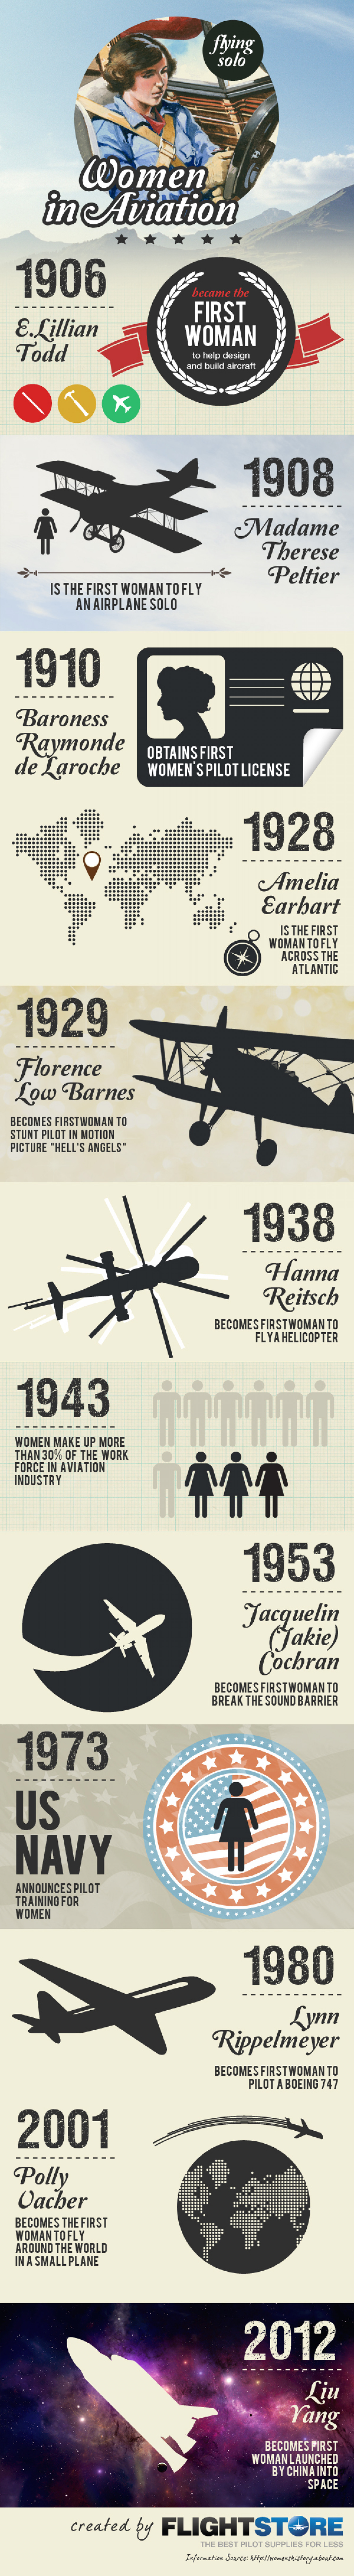 Women in Aviation History Infographic